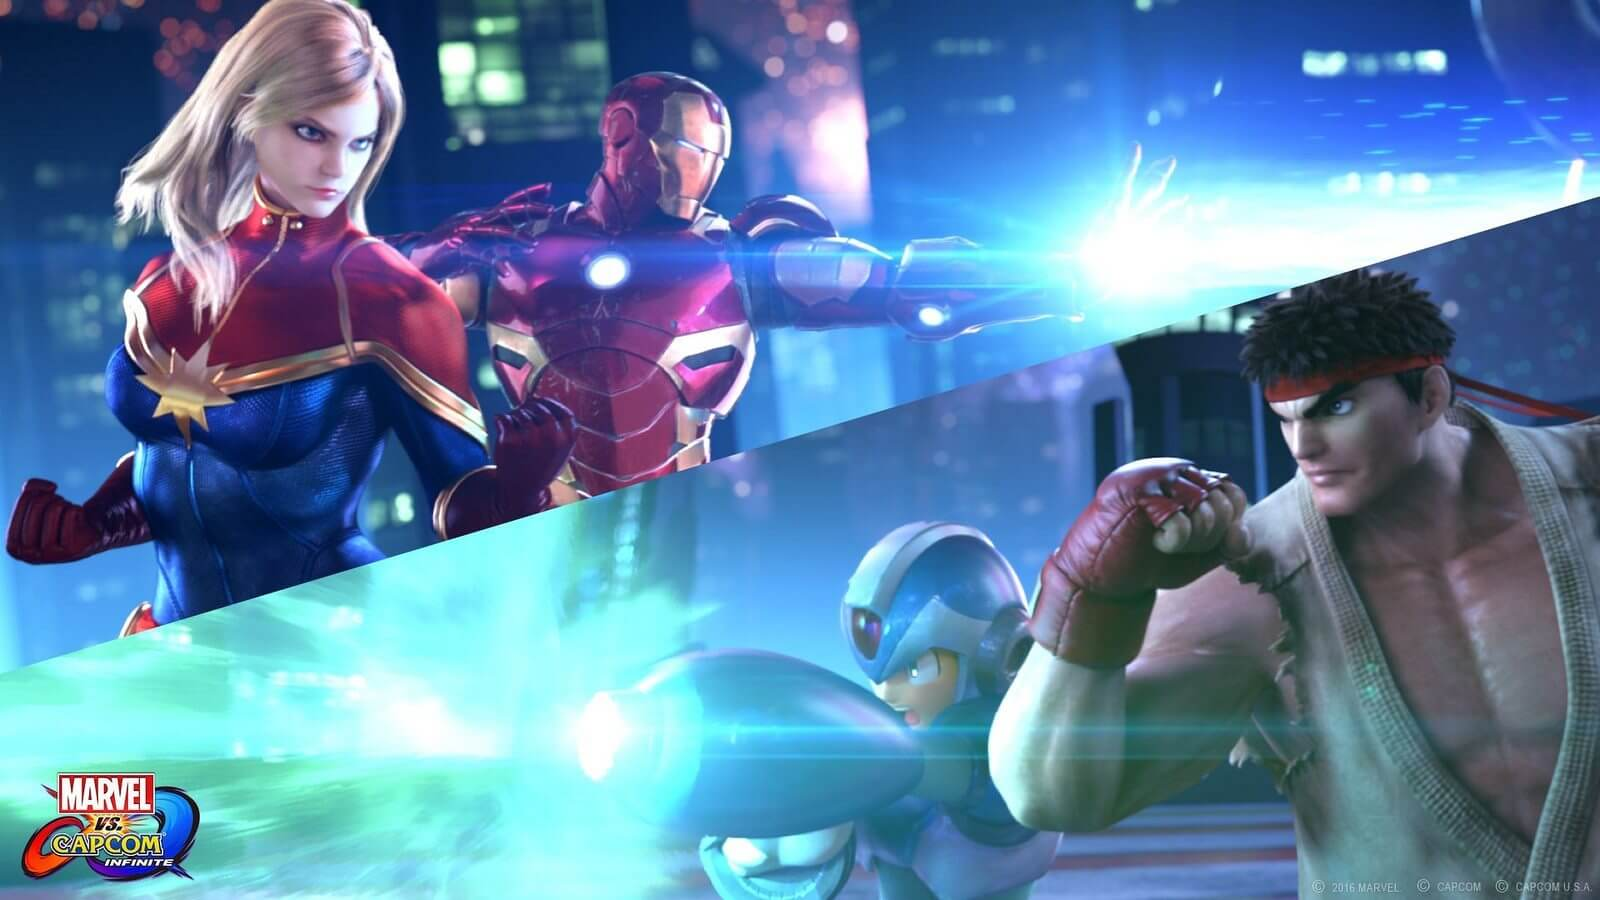 Marvel vs. Capcom: Infinite versus